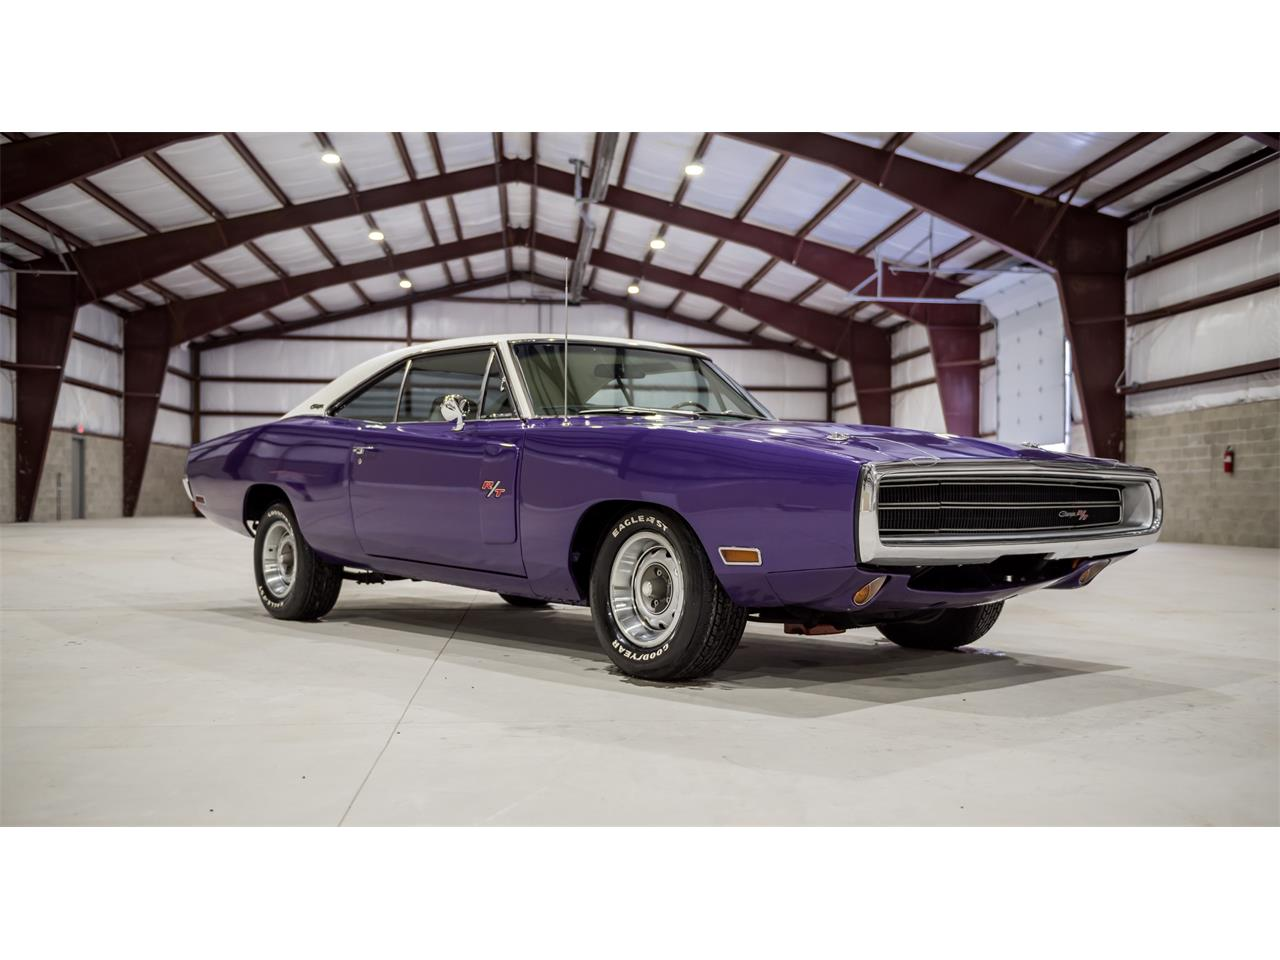 for sale 1970 dodge charger in ann arbor , michigan cars - ann arbor, mi at geebo